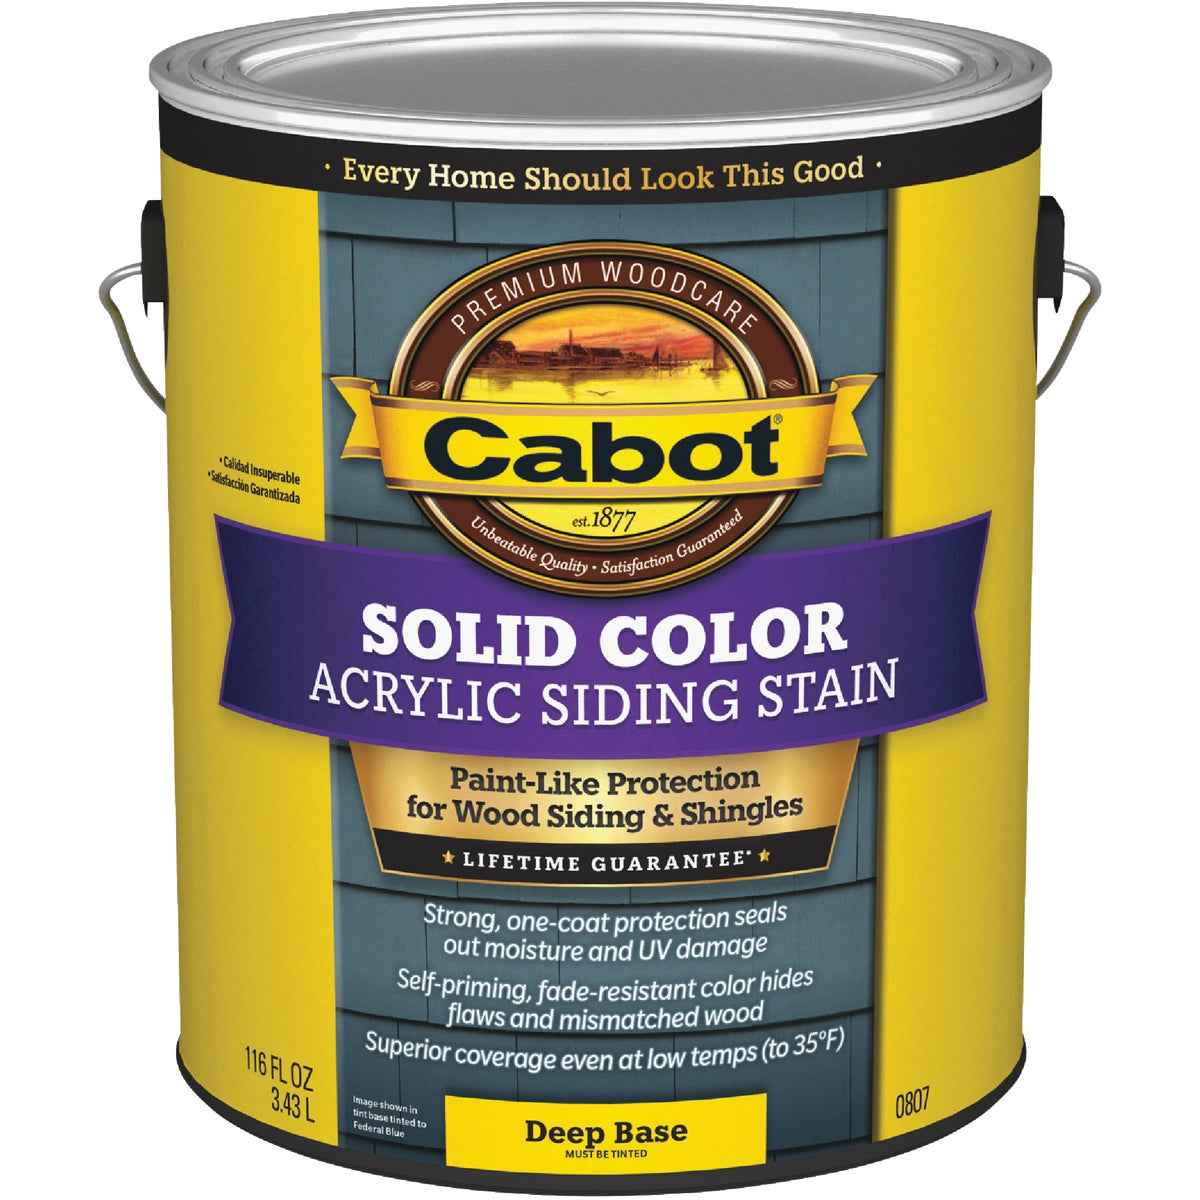 DEEP BS PRO SOLID STAIN